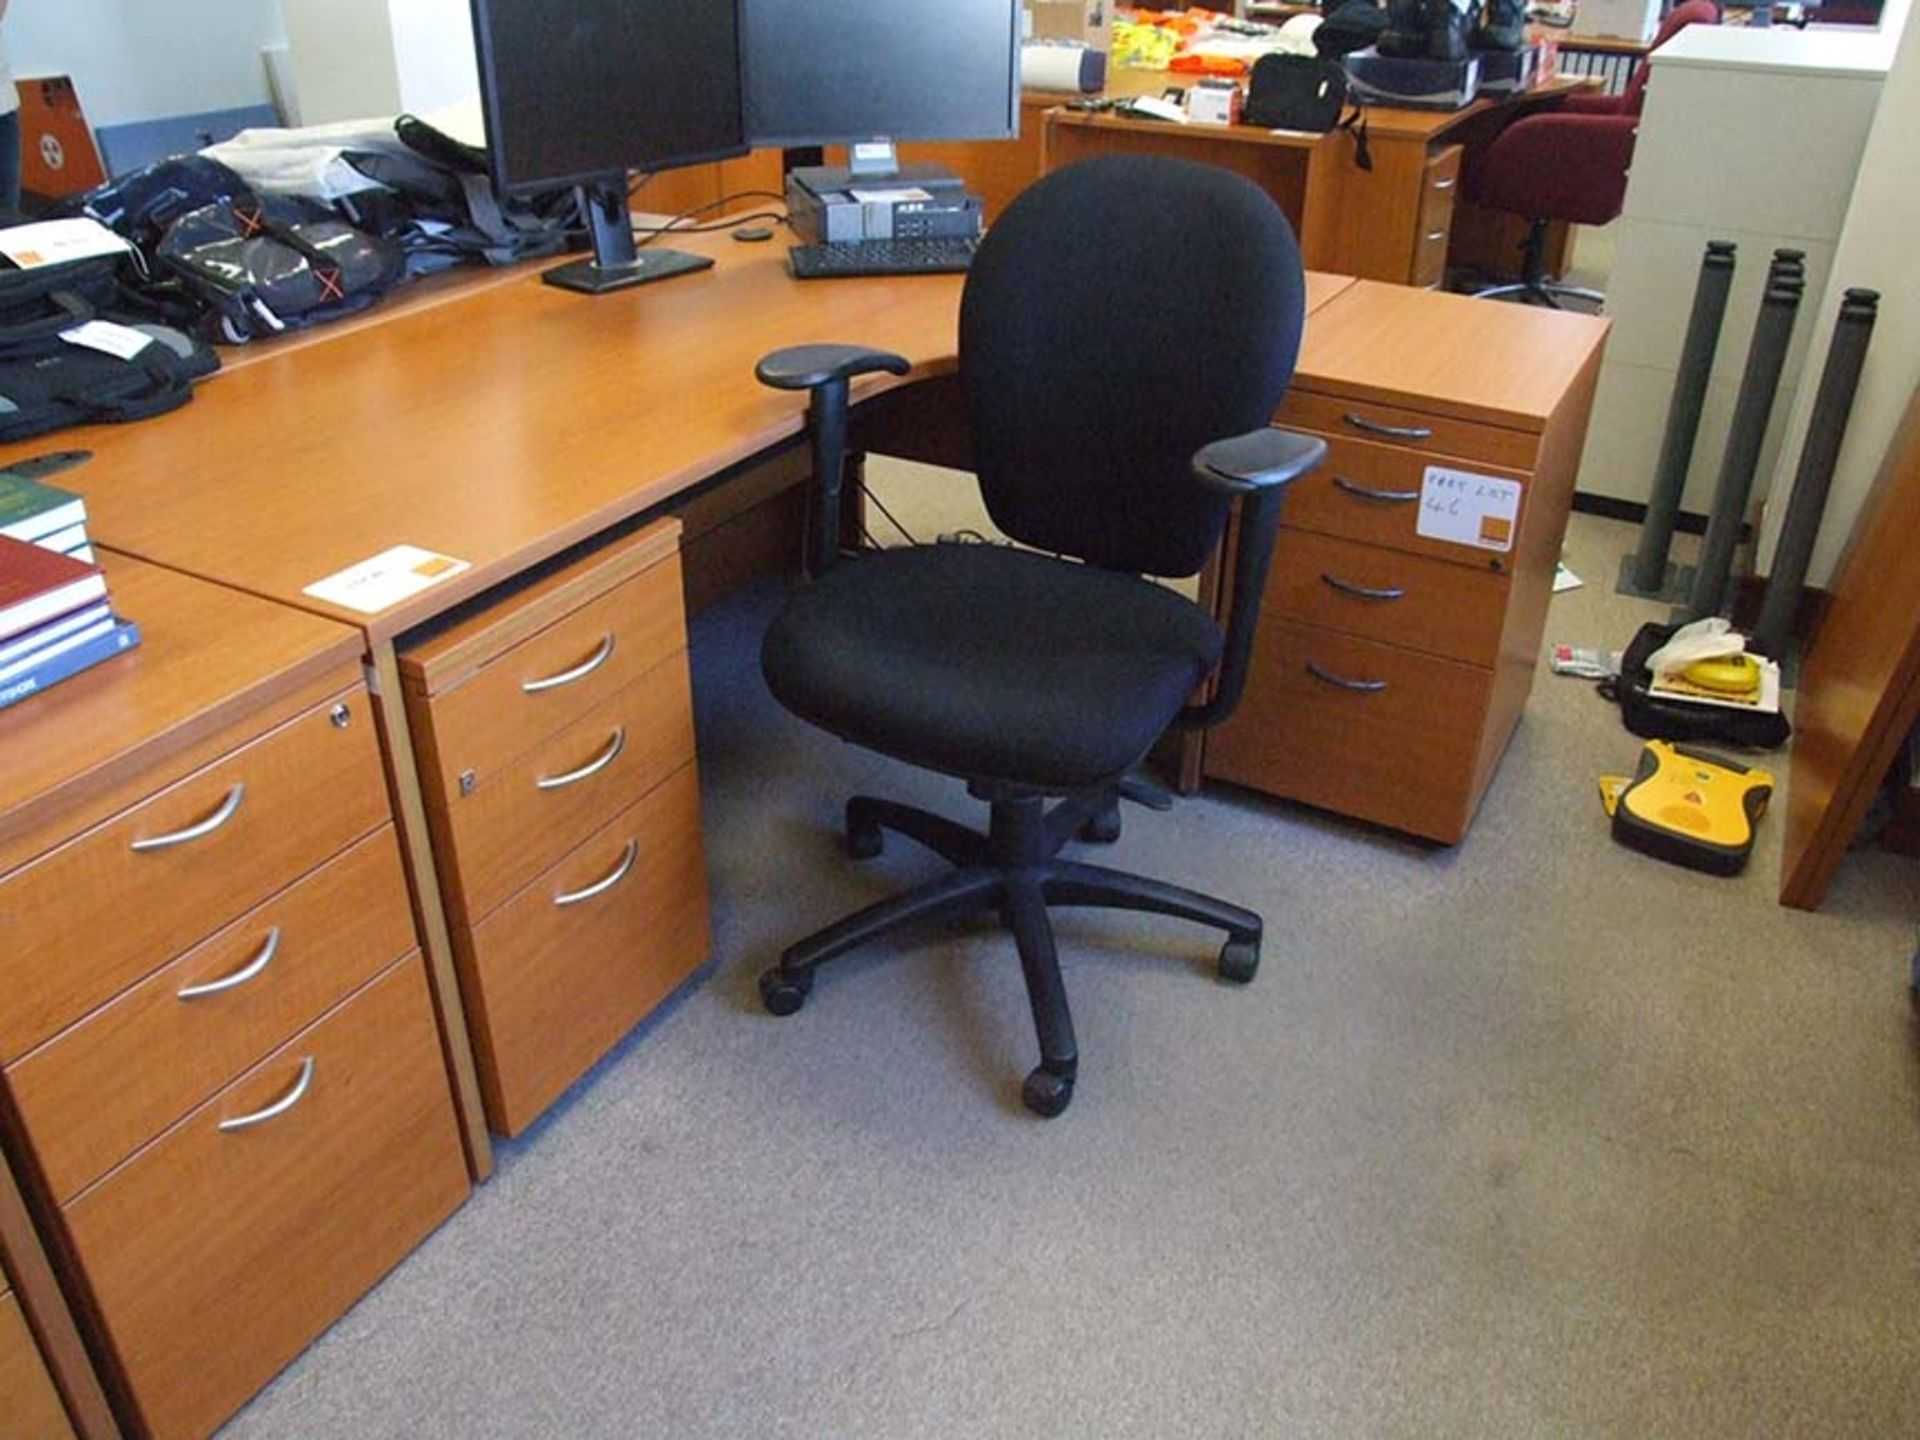 Lot 46 - Shaped Desk with RH return and 3 drawer and 4 drawer pedestals 1800 wide with operators chair